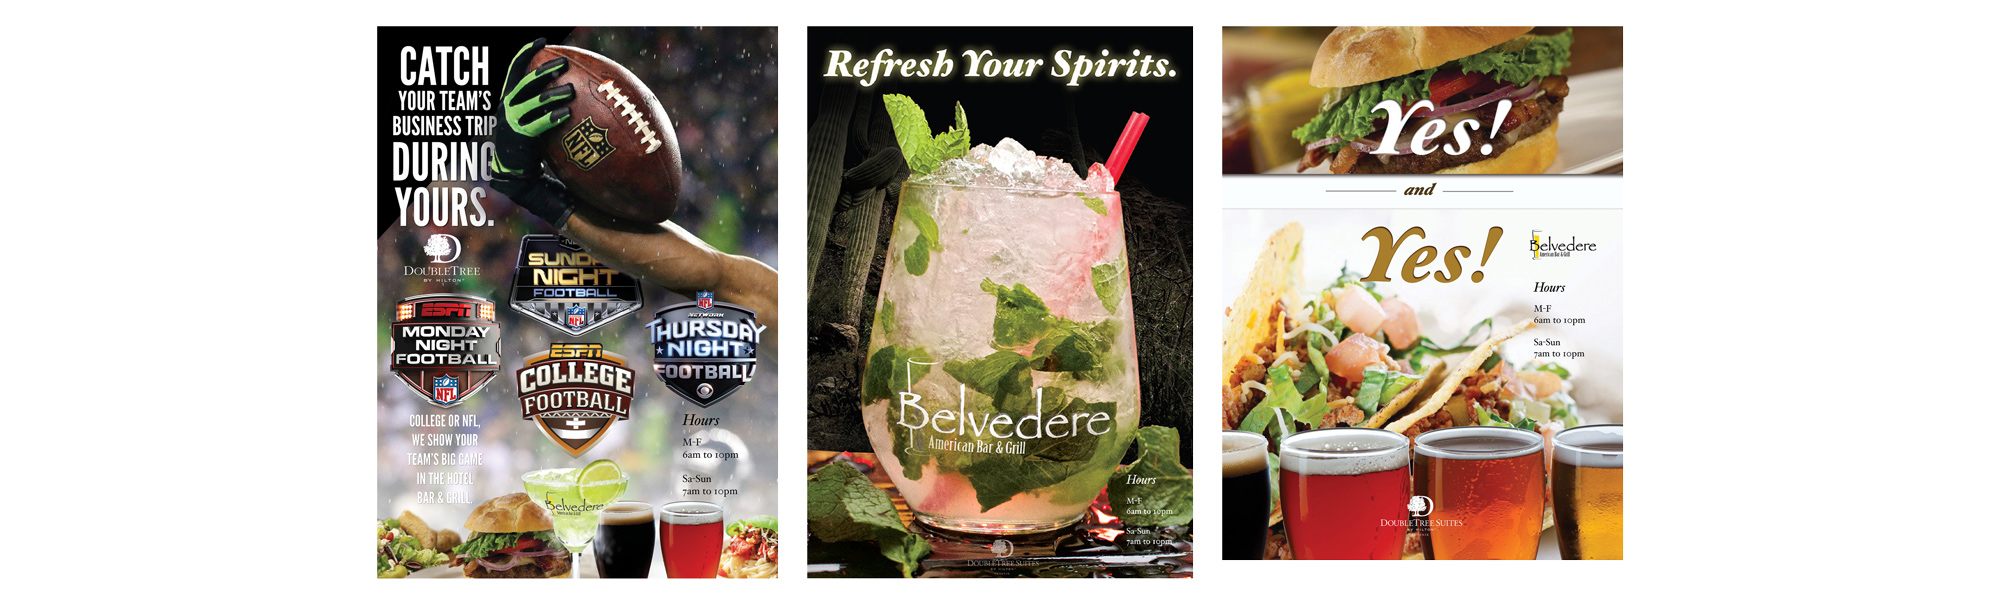 DoubleTree Hotels, Phoenix  3 poster set for on-site restraunt marketing